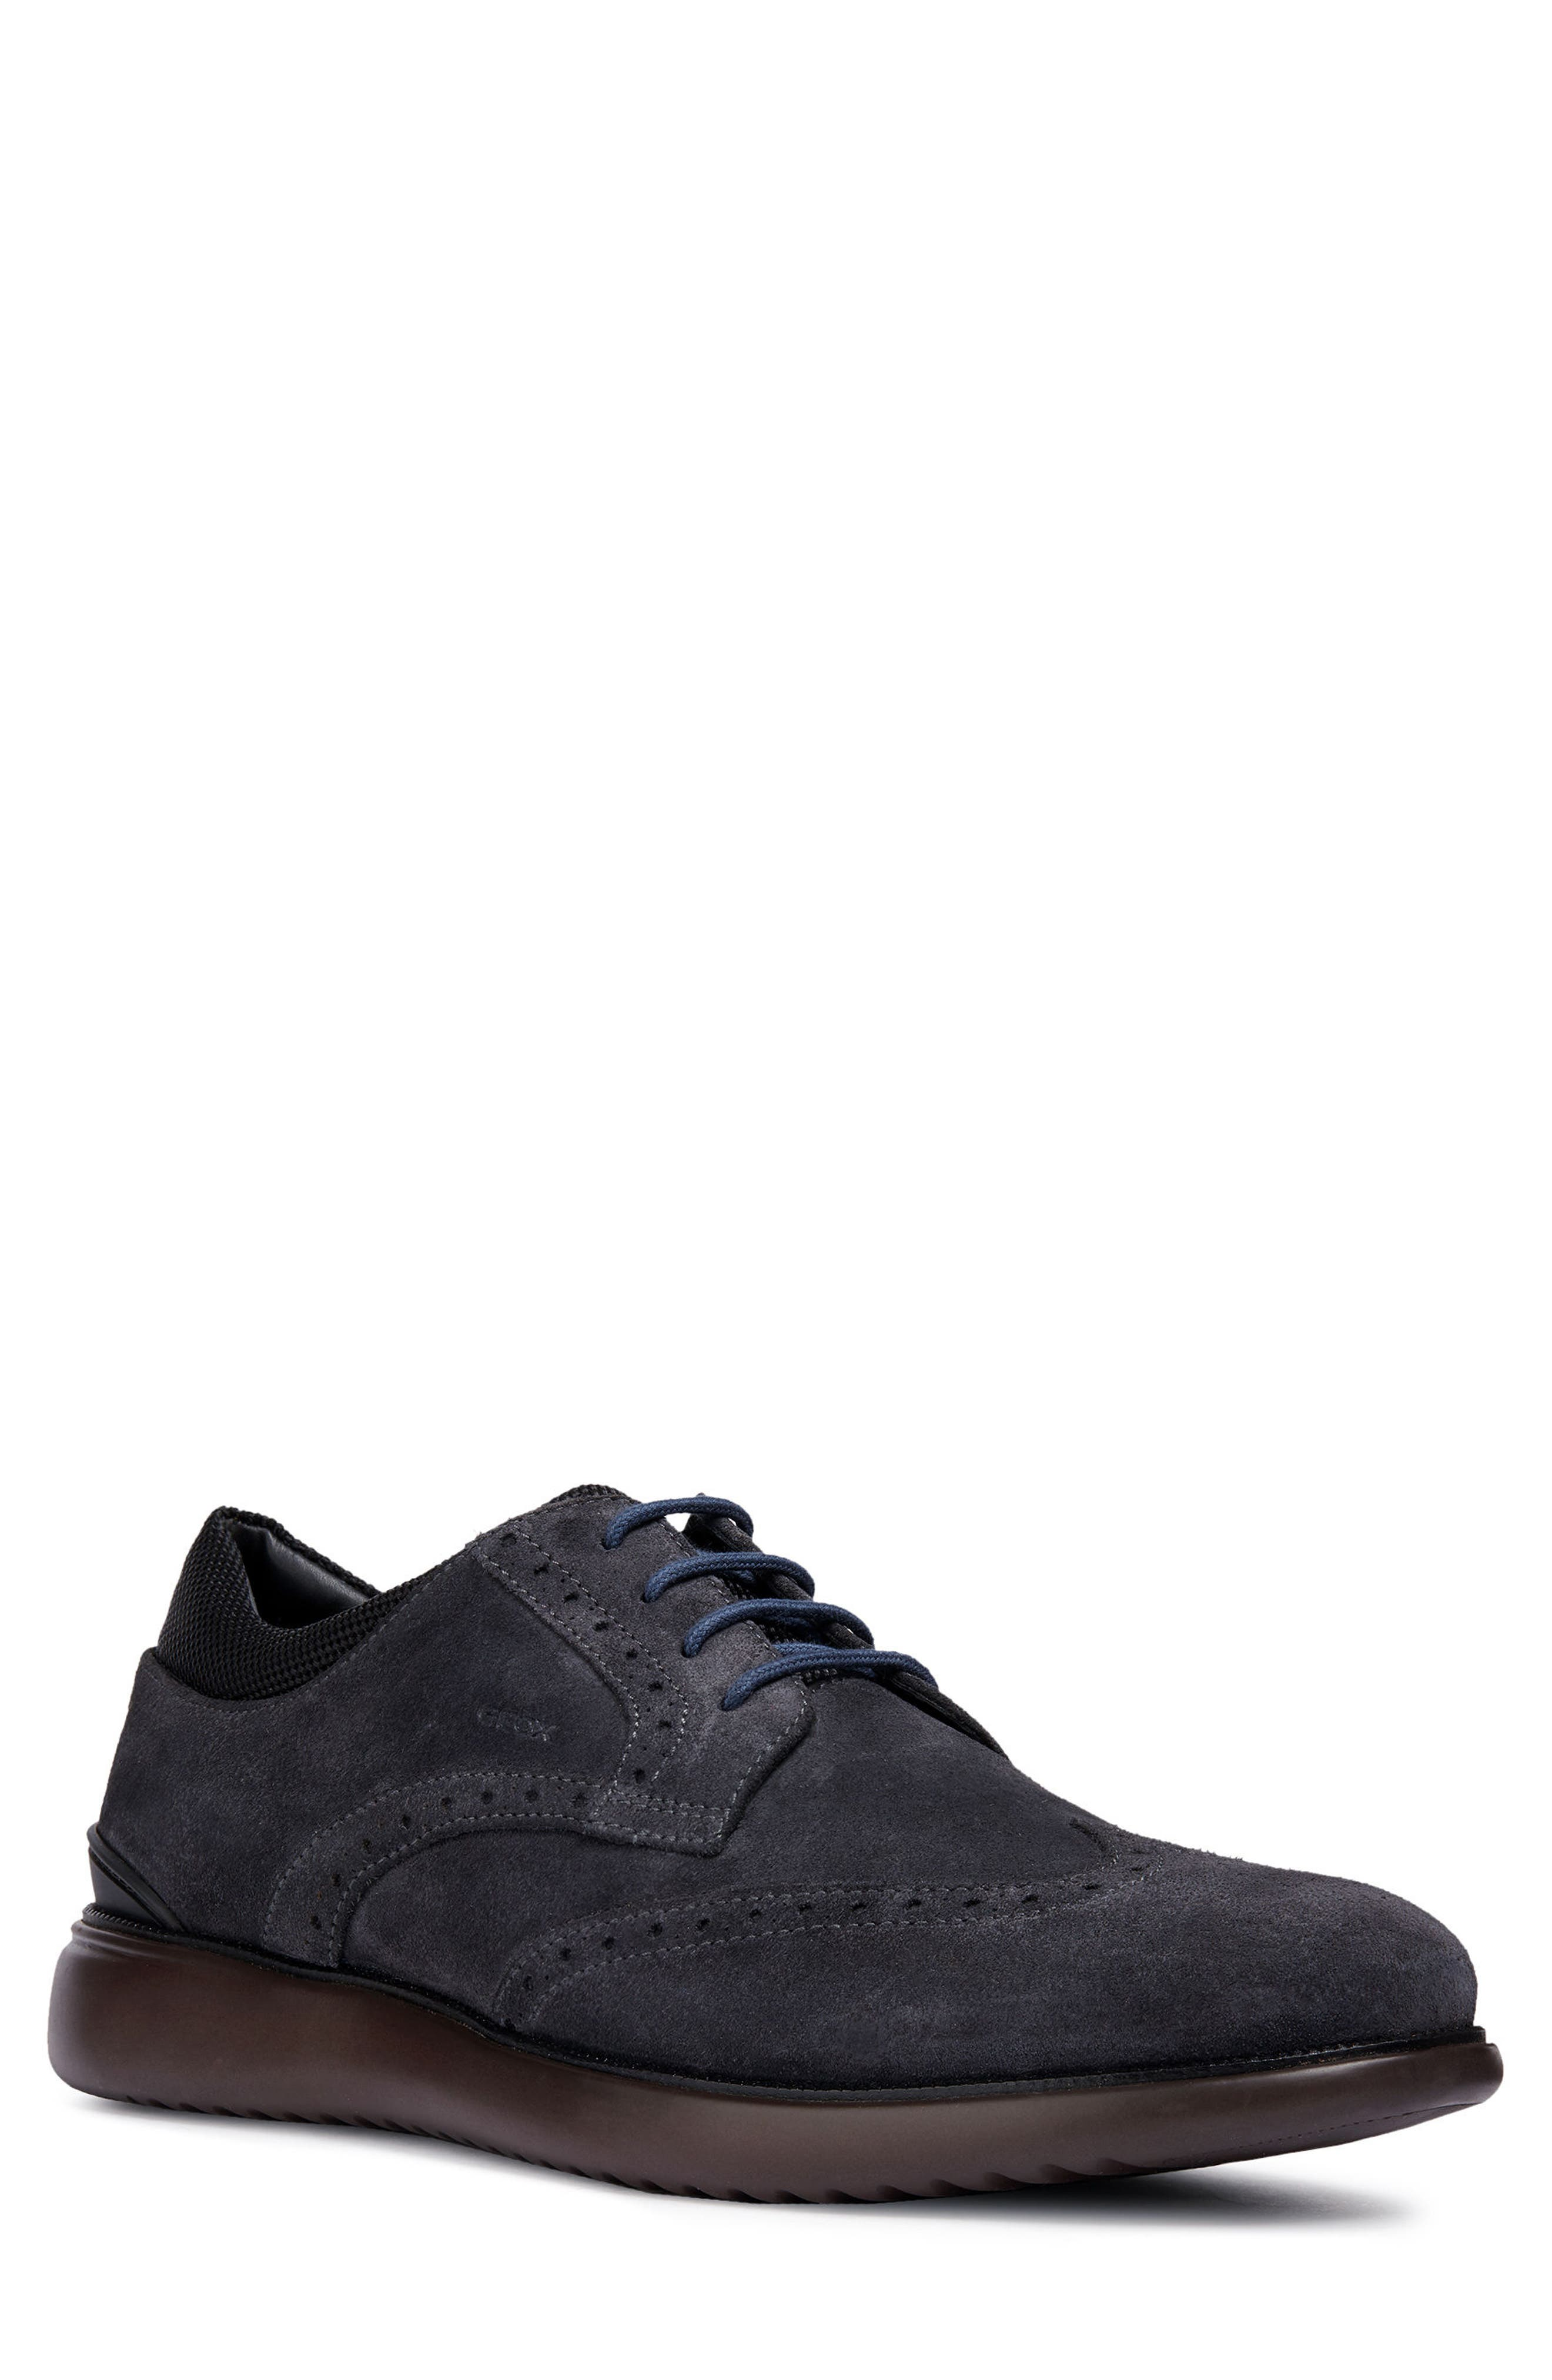 Winfred 6 Wingtip,                         Main,                         color, DARK JEANS/ BLACK LEATHER